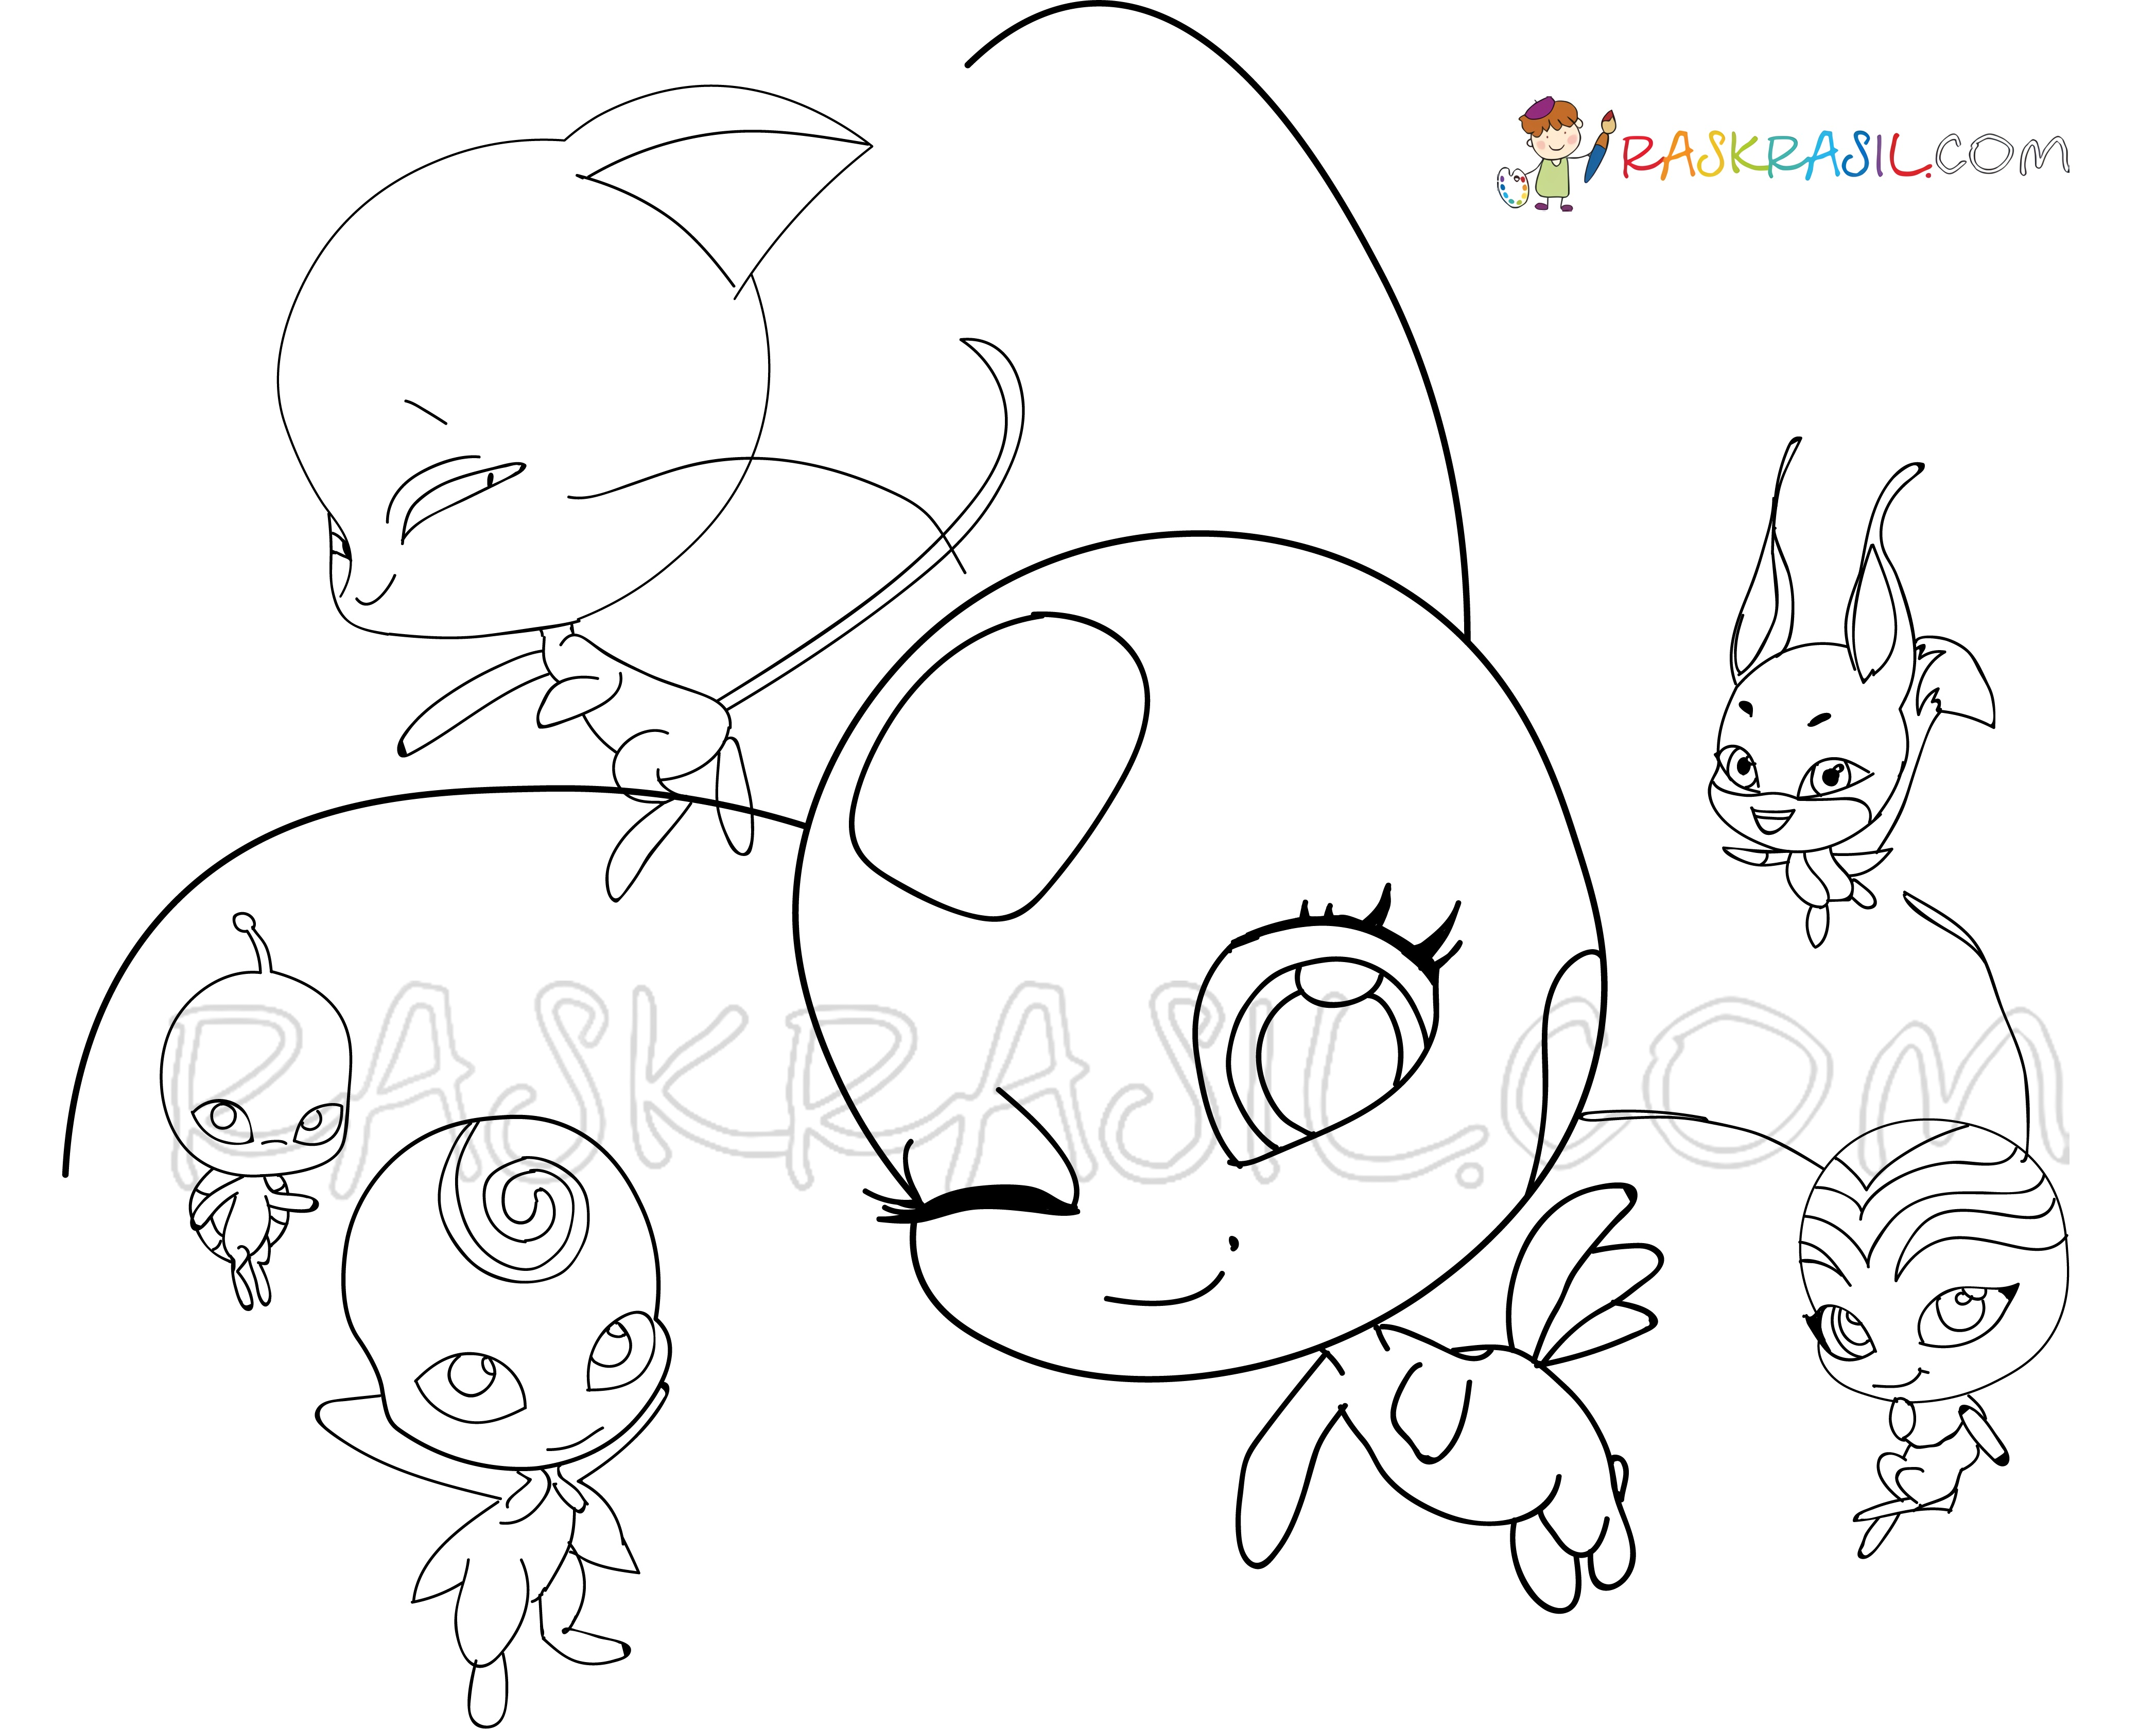 Miraculous Ladybug Coloring Pages.75 Free Printable Images